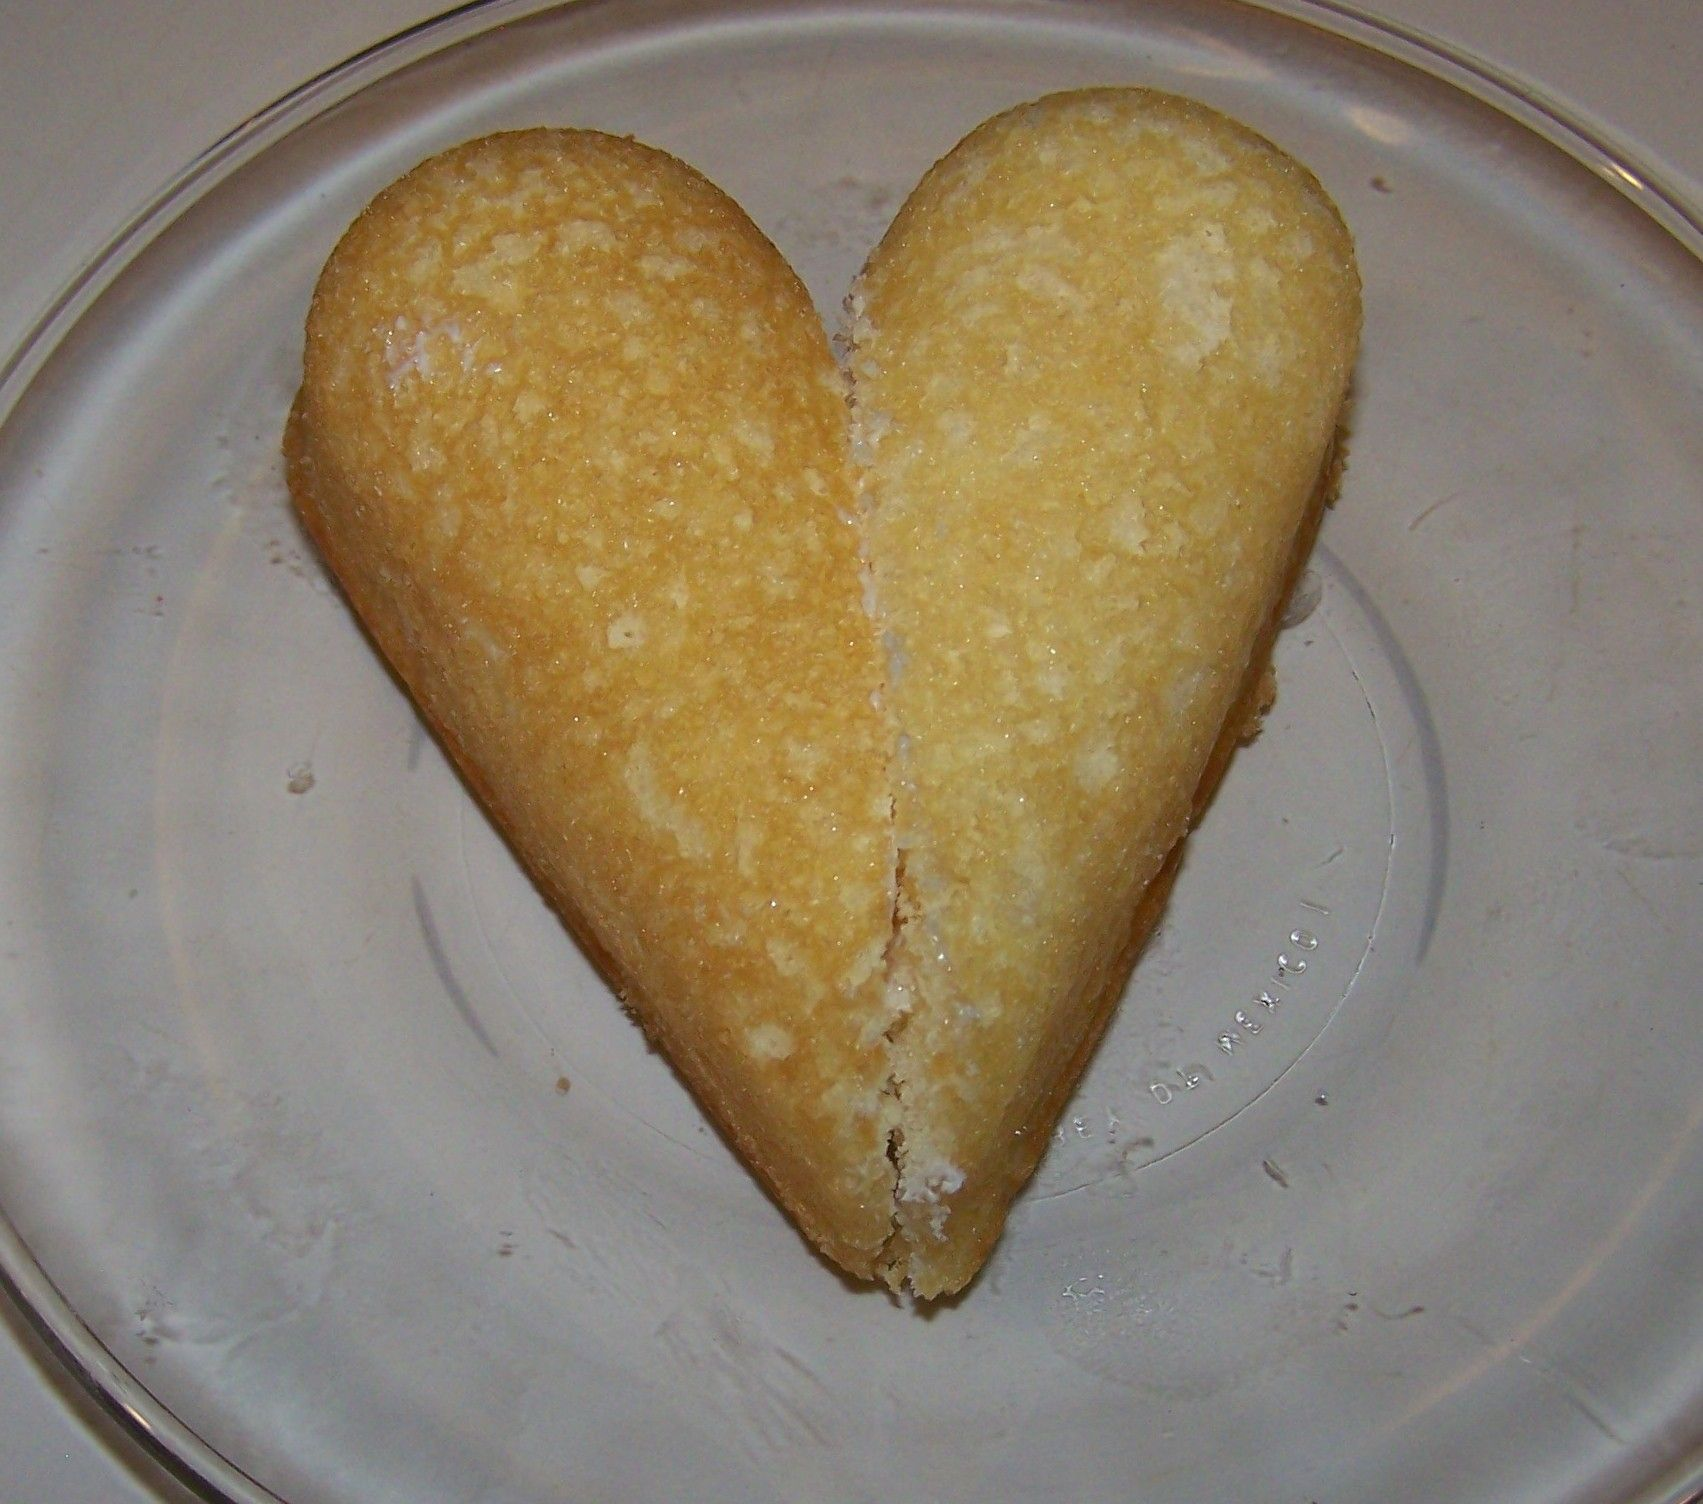 Twinkies, cut and pushed together to make an abosolutely appetizing Valentine's Day treat.